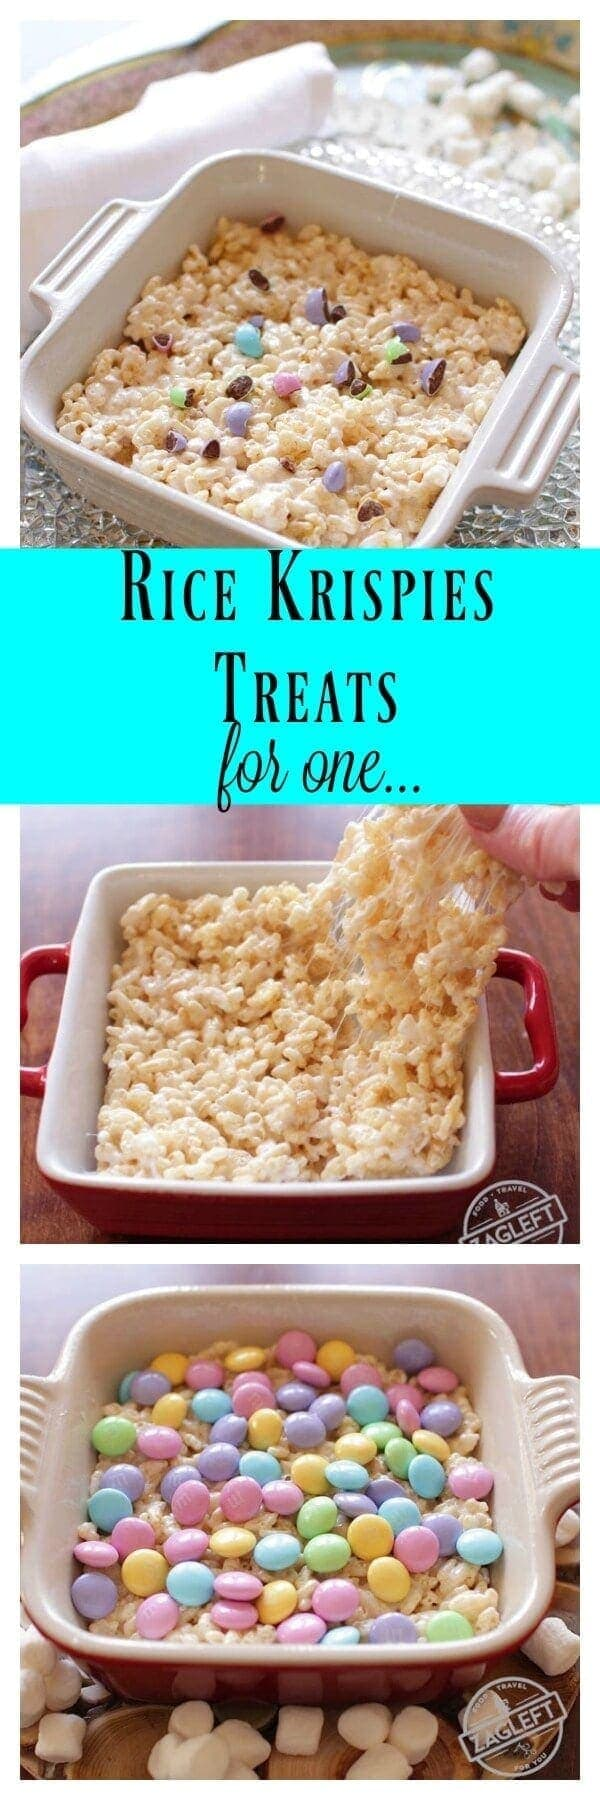 Rice Krispies Treats For One, a single serving version of a classic dessert made in the microwave. Only three ingredients needed and so easy to make.